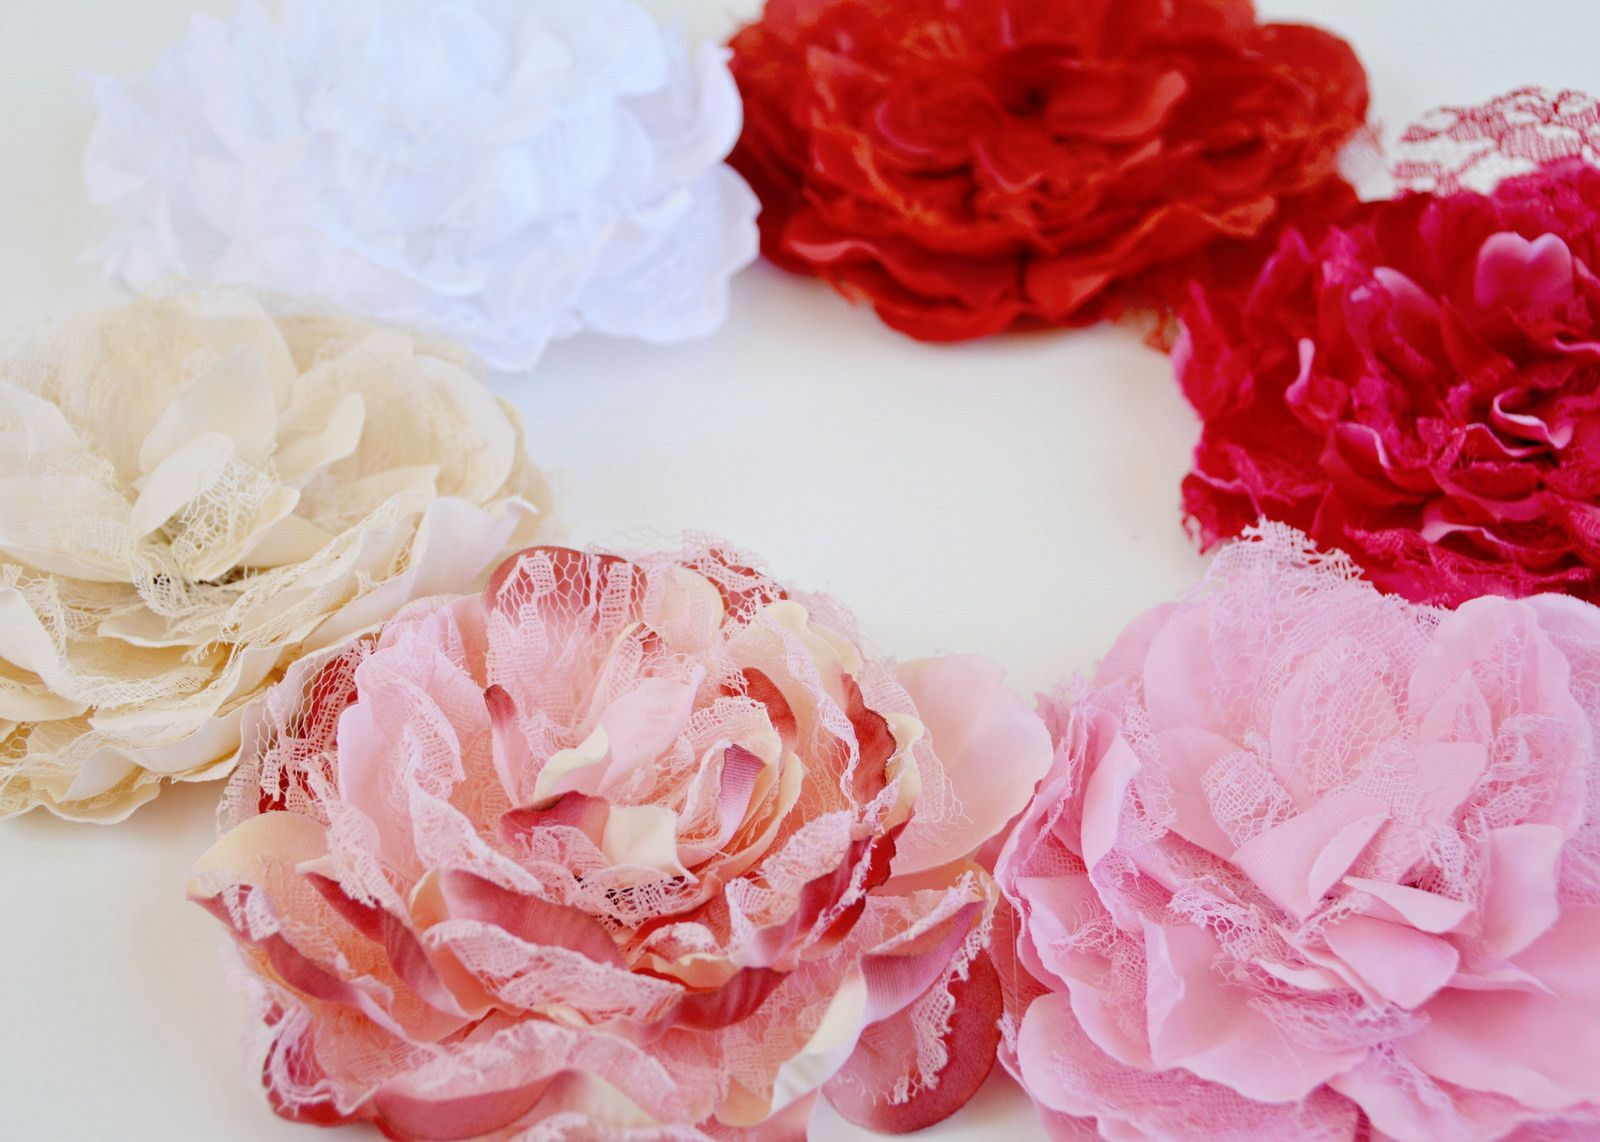 XL Lace Peonies - Each